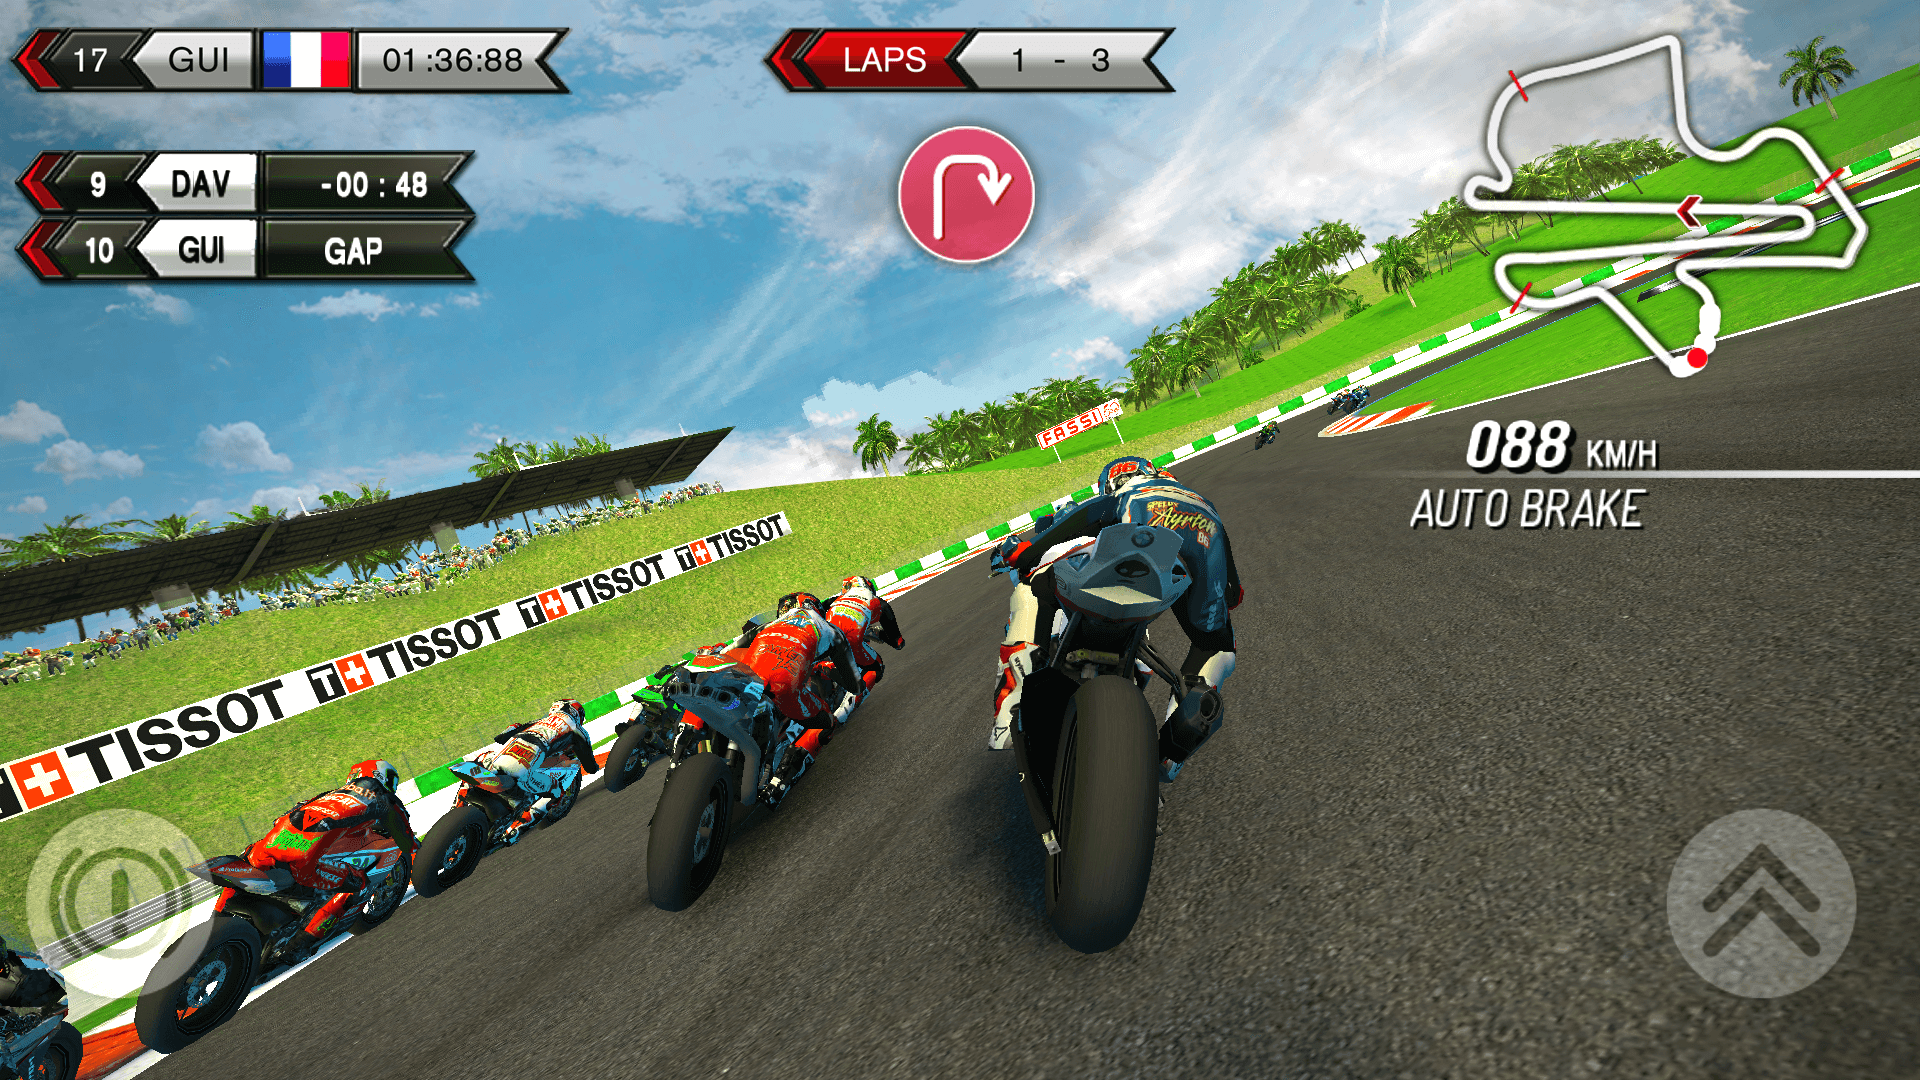 Master 4 game modes including Championship, Quick Race, Time Attack and Challenge, where you race against your friends' and/or real SBK riders' best laps